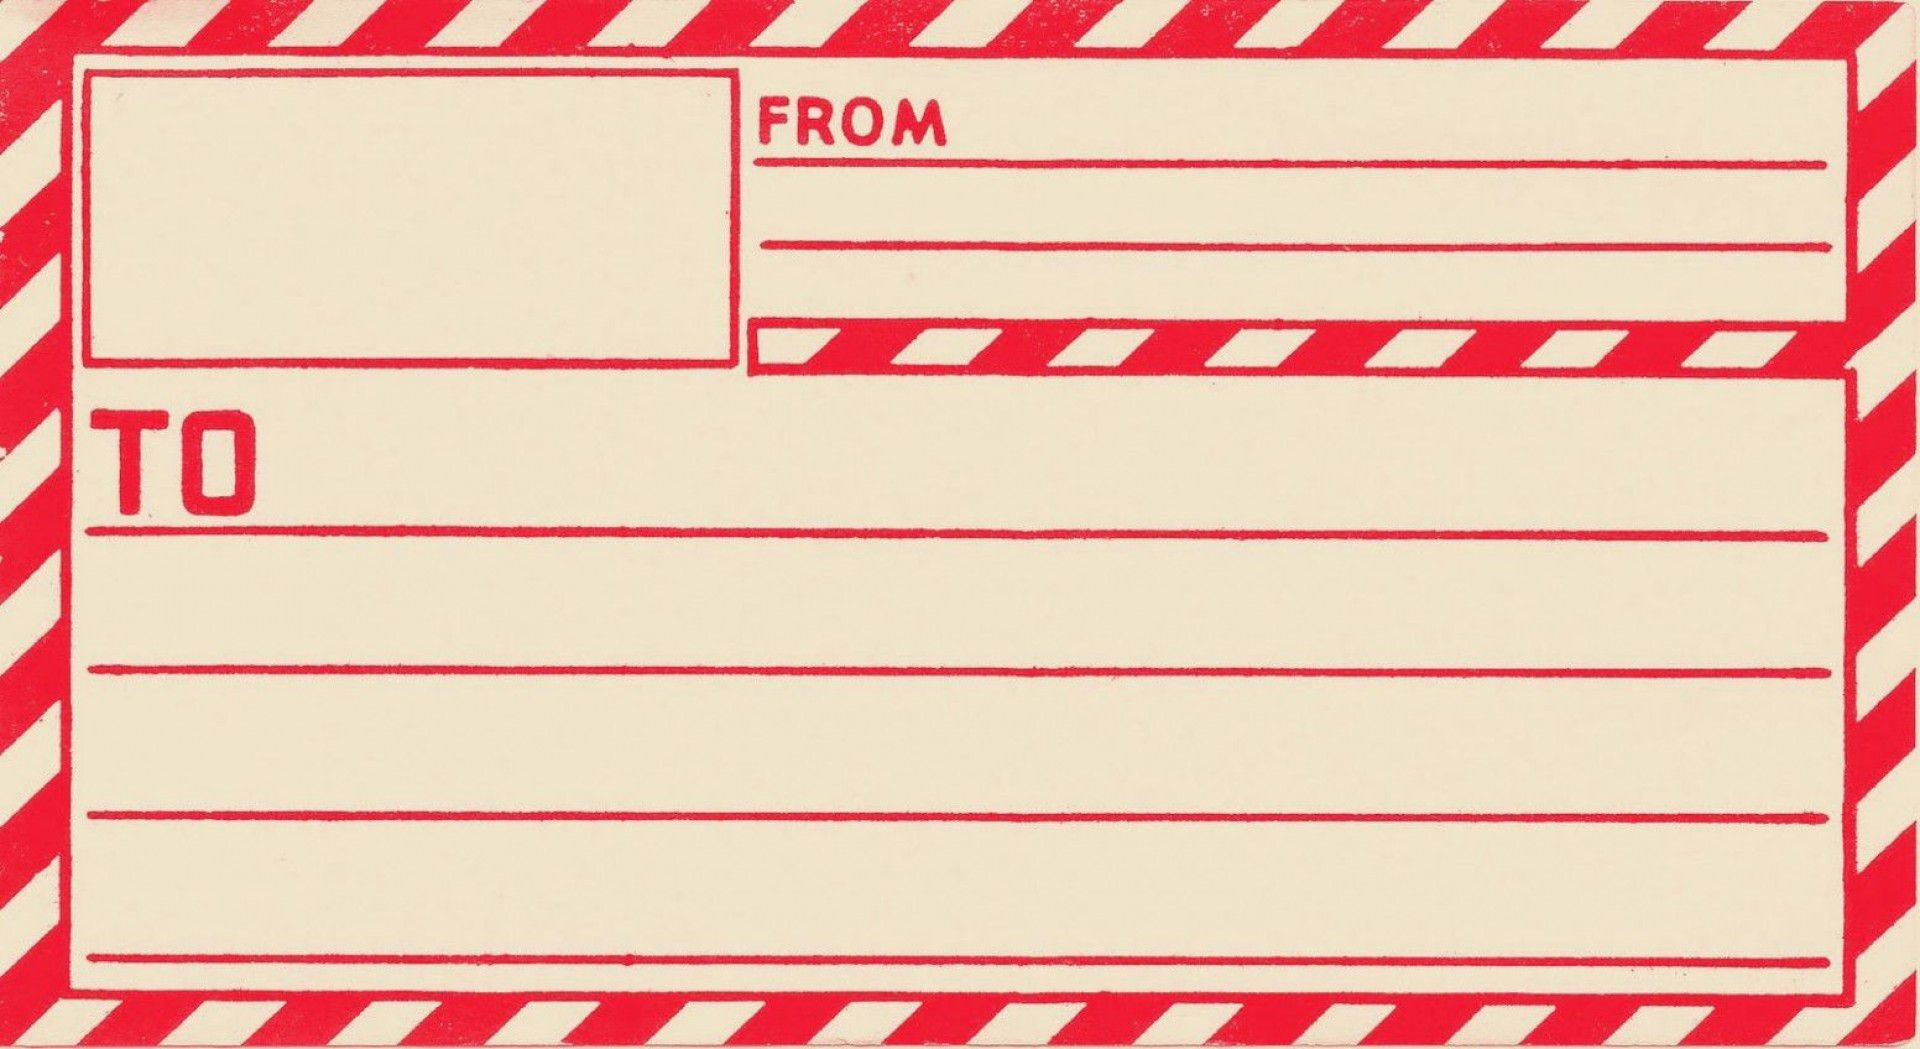 000 Fearsome Shipping Label Template Free Word Idea 1920